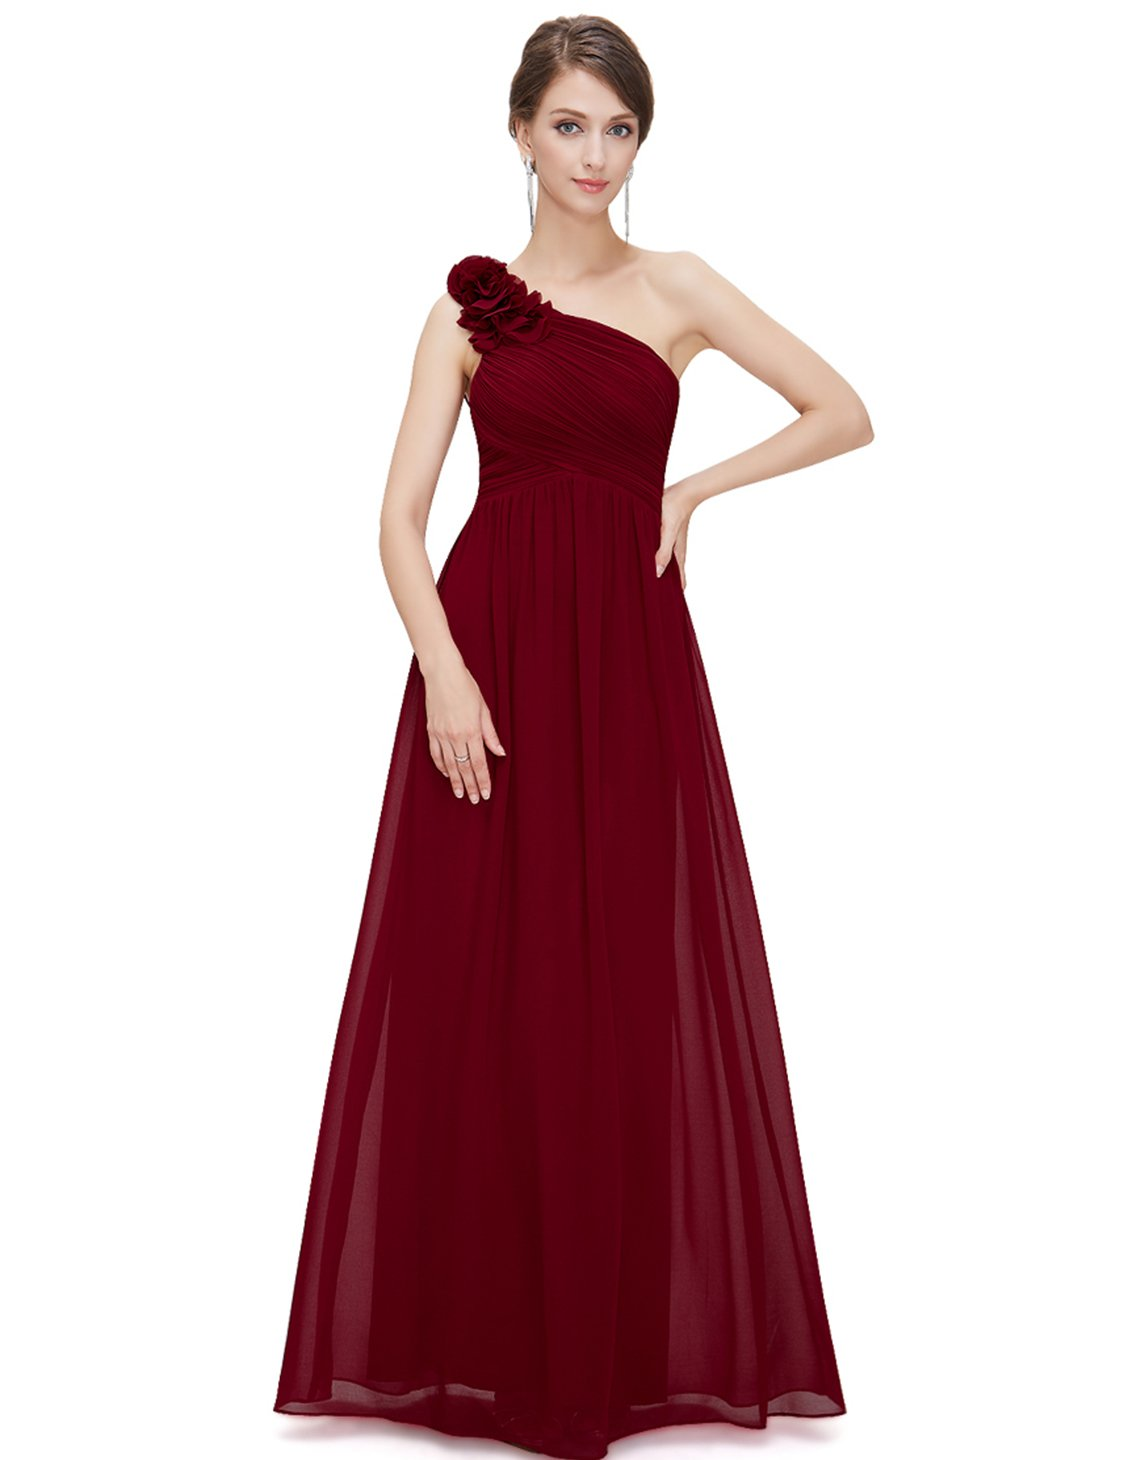 Ever-Pretty One Shoulder Ruffles Bridesmaid Dresses Plus Size 6US Red